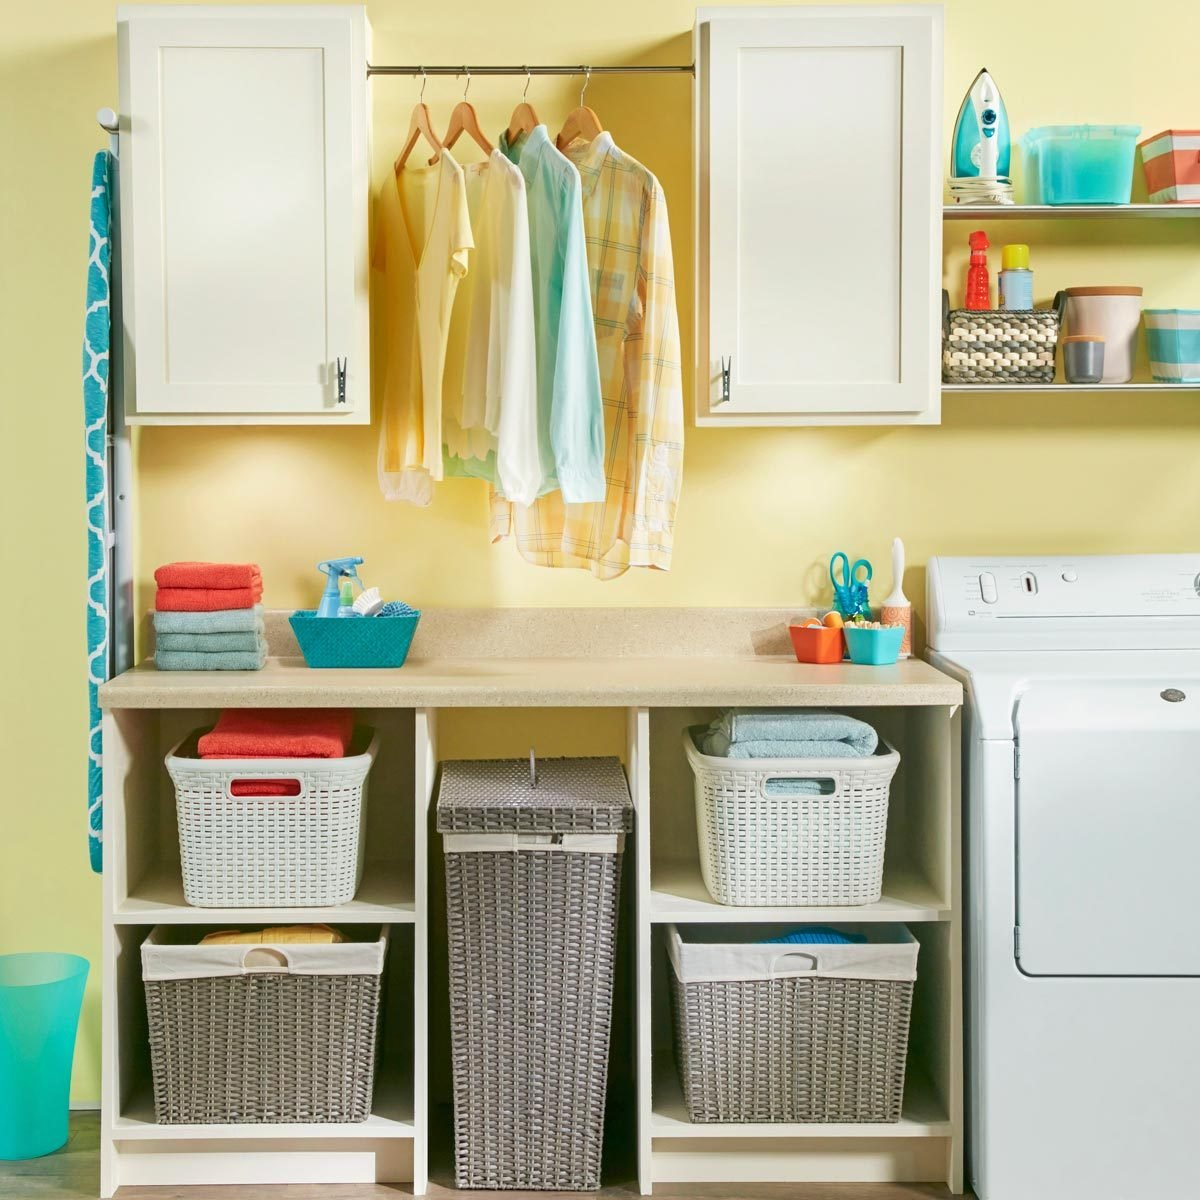 25 Laundry Room Ideas You Can Diy Today Family Handyman